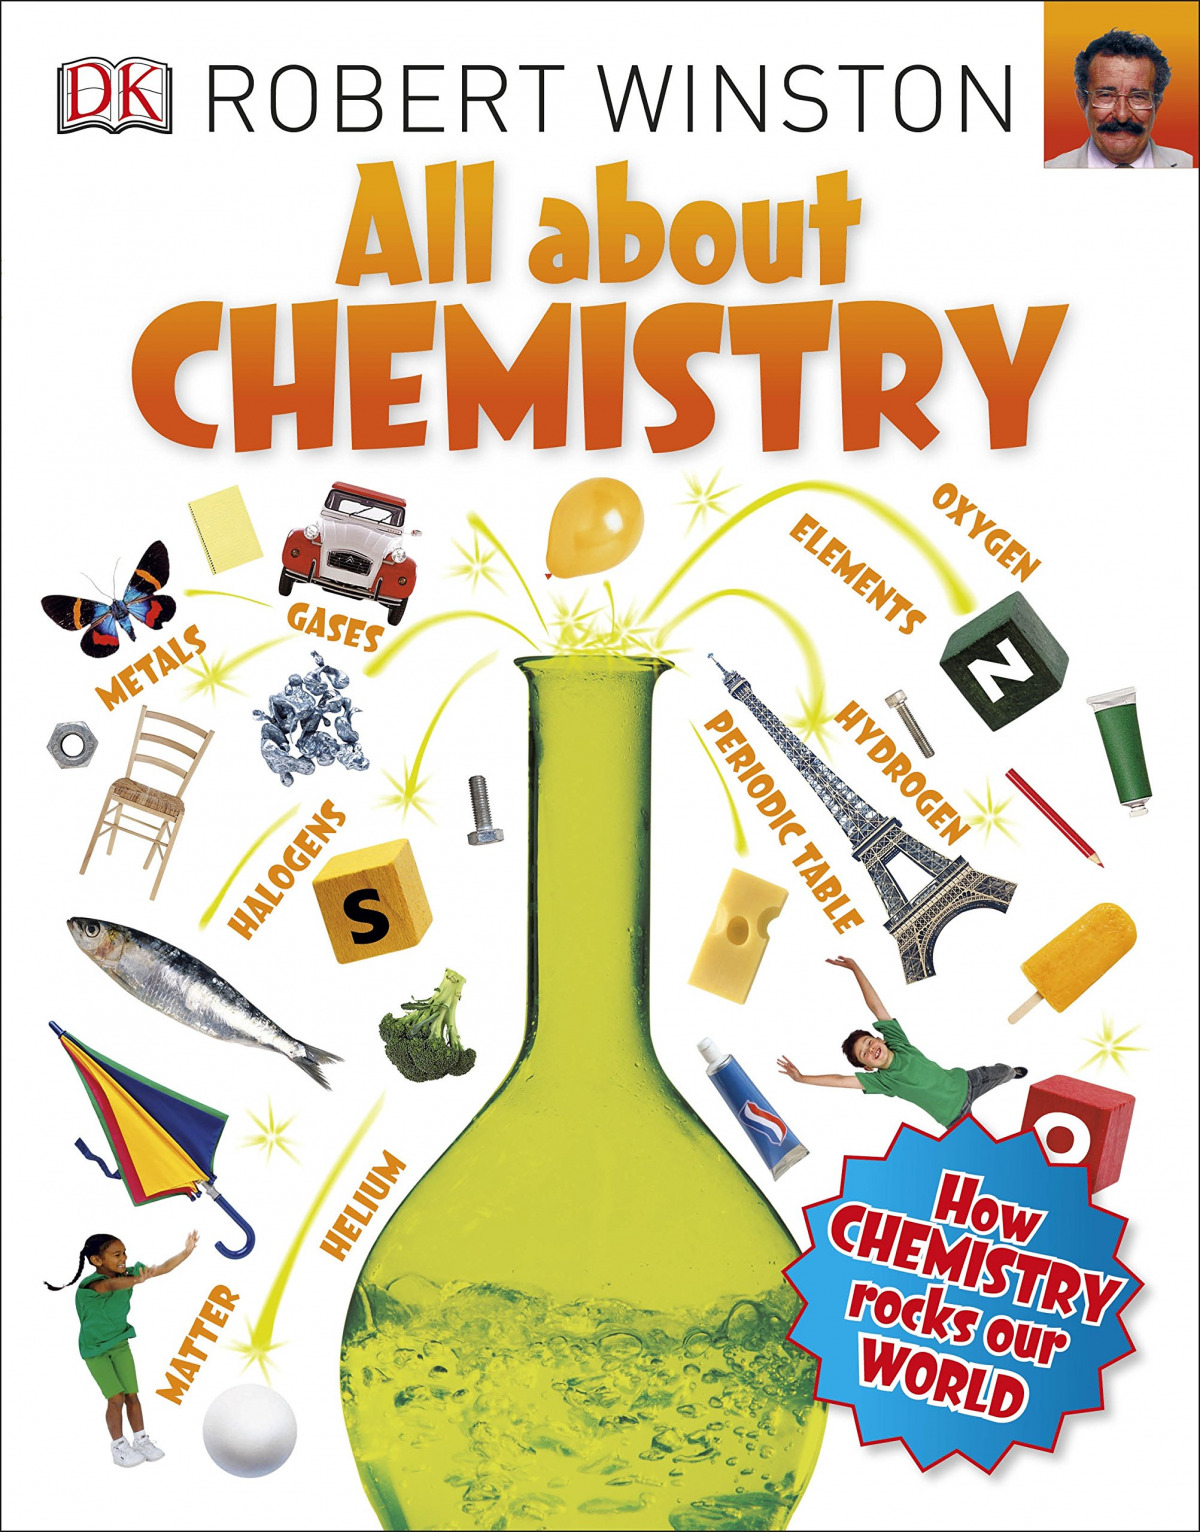 (winston).all about chemistry.(dk)